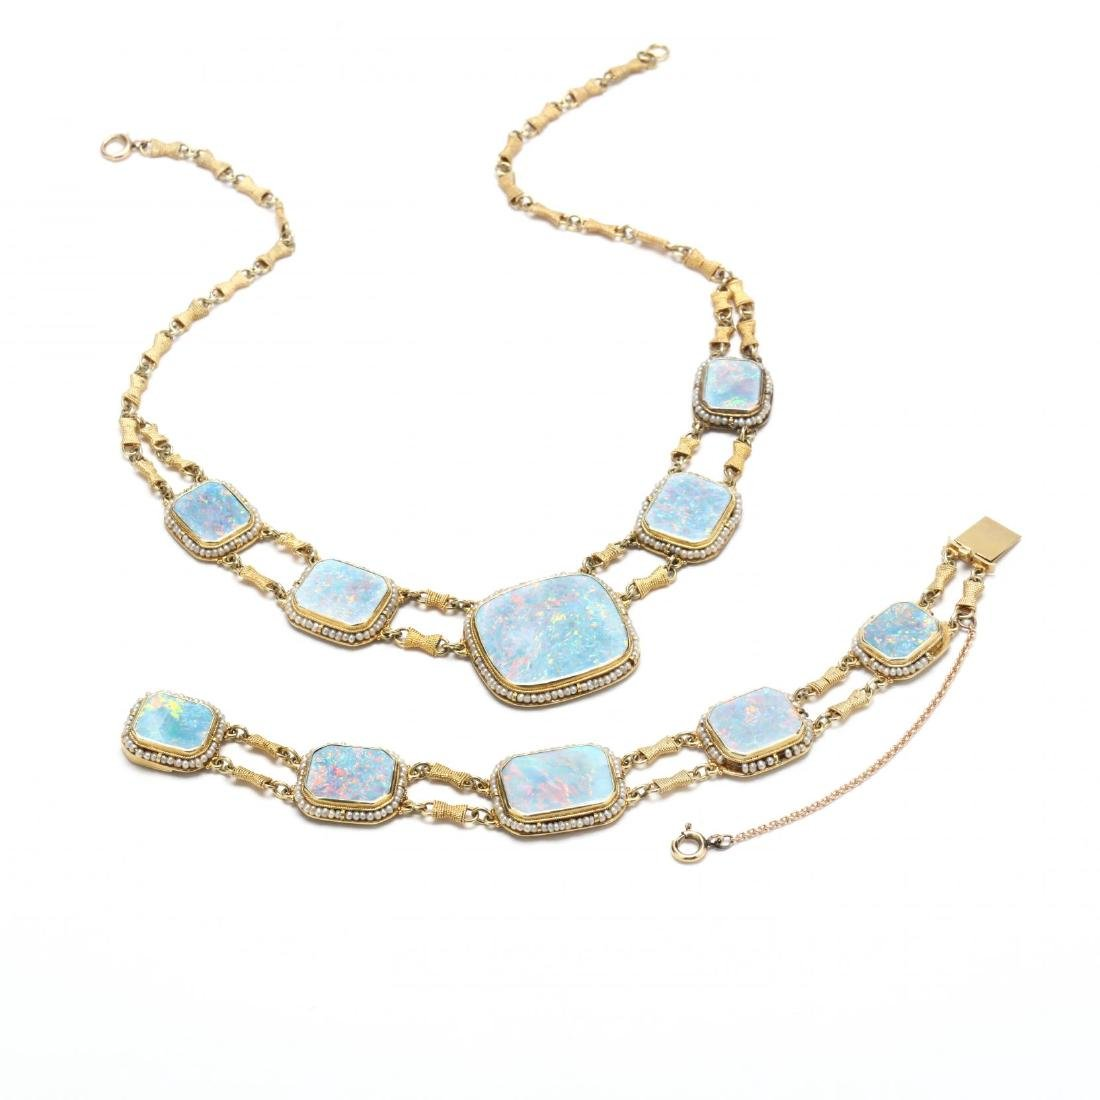 14KT Opal and Seed Pearl Demi Parure